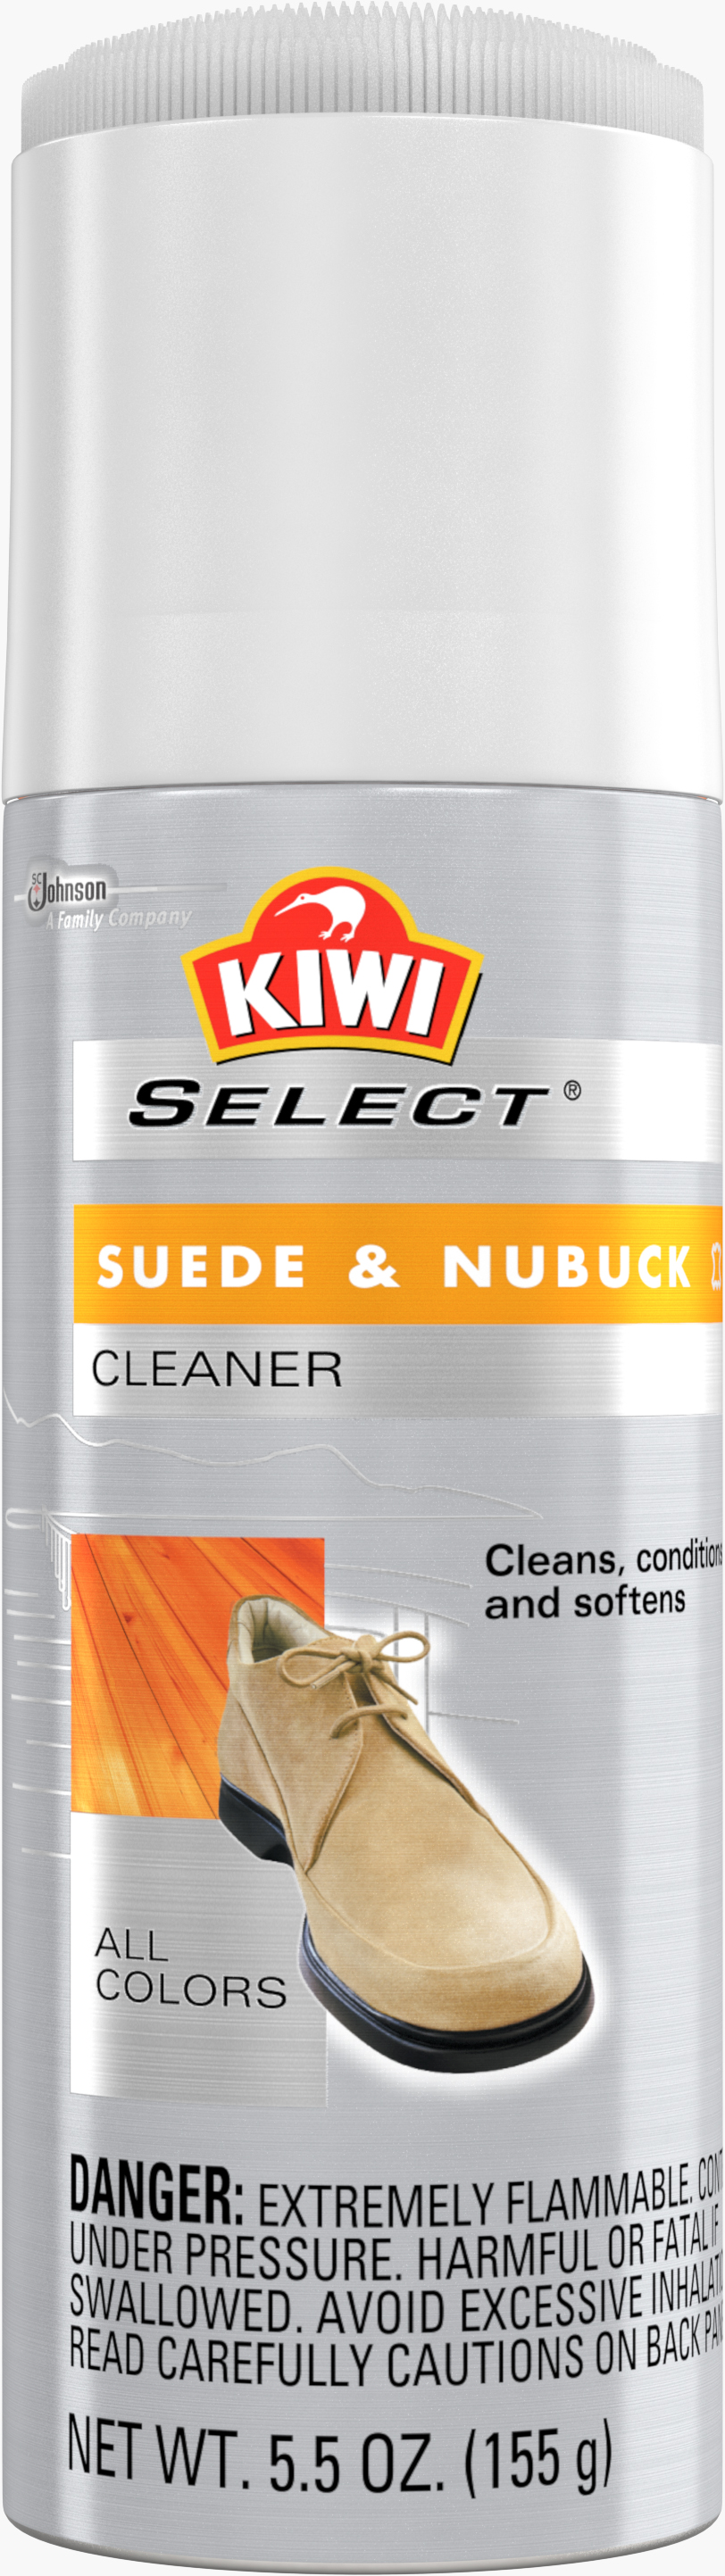 KIWI® Select Suede & Nubuck Cleaner